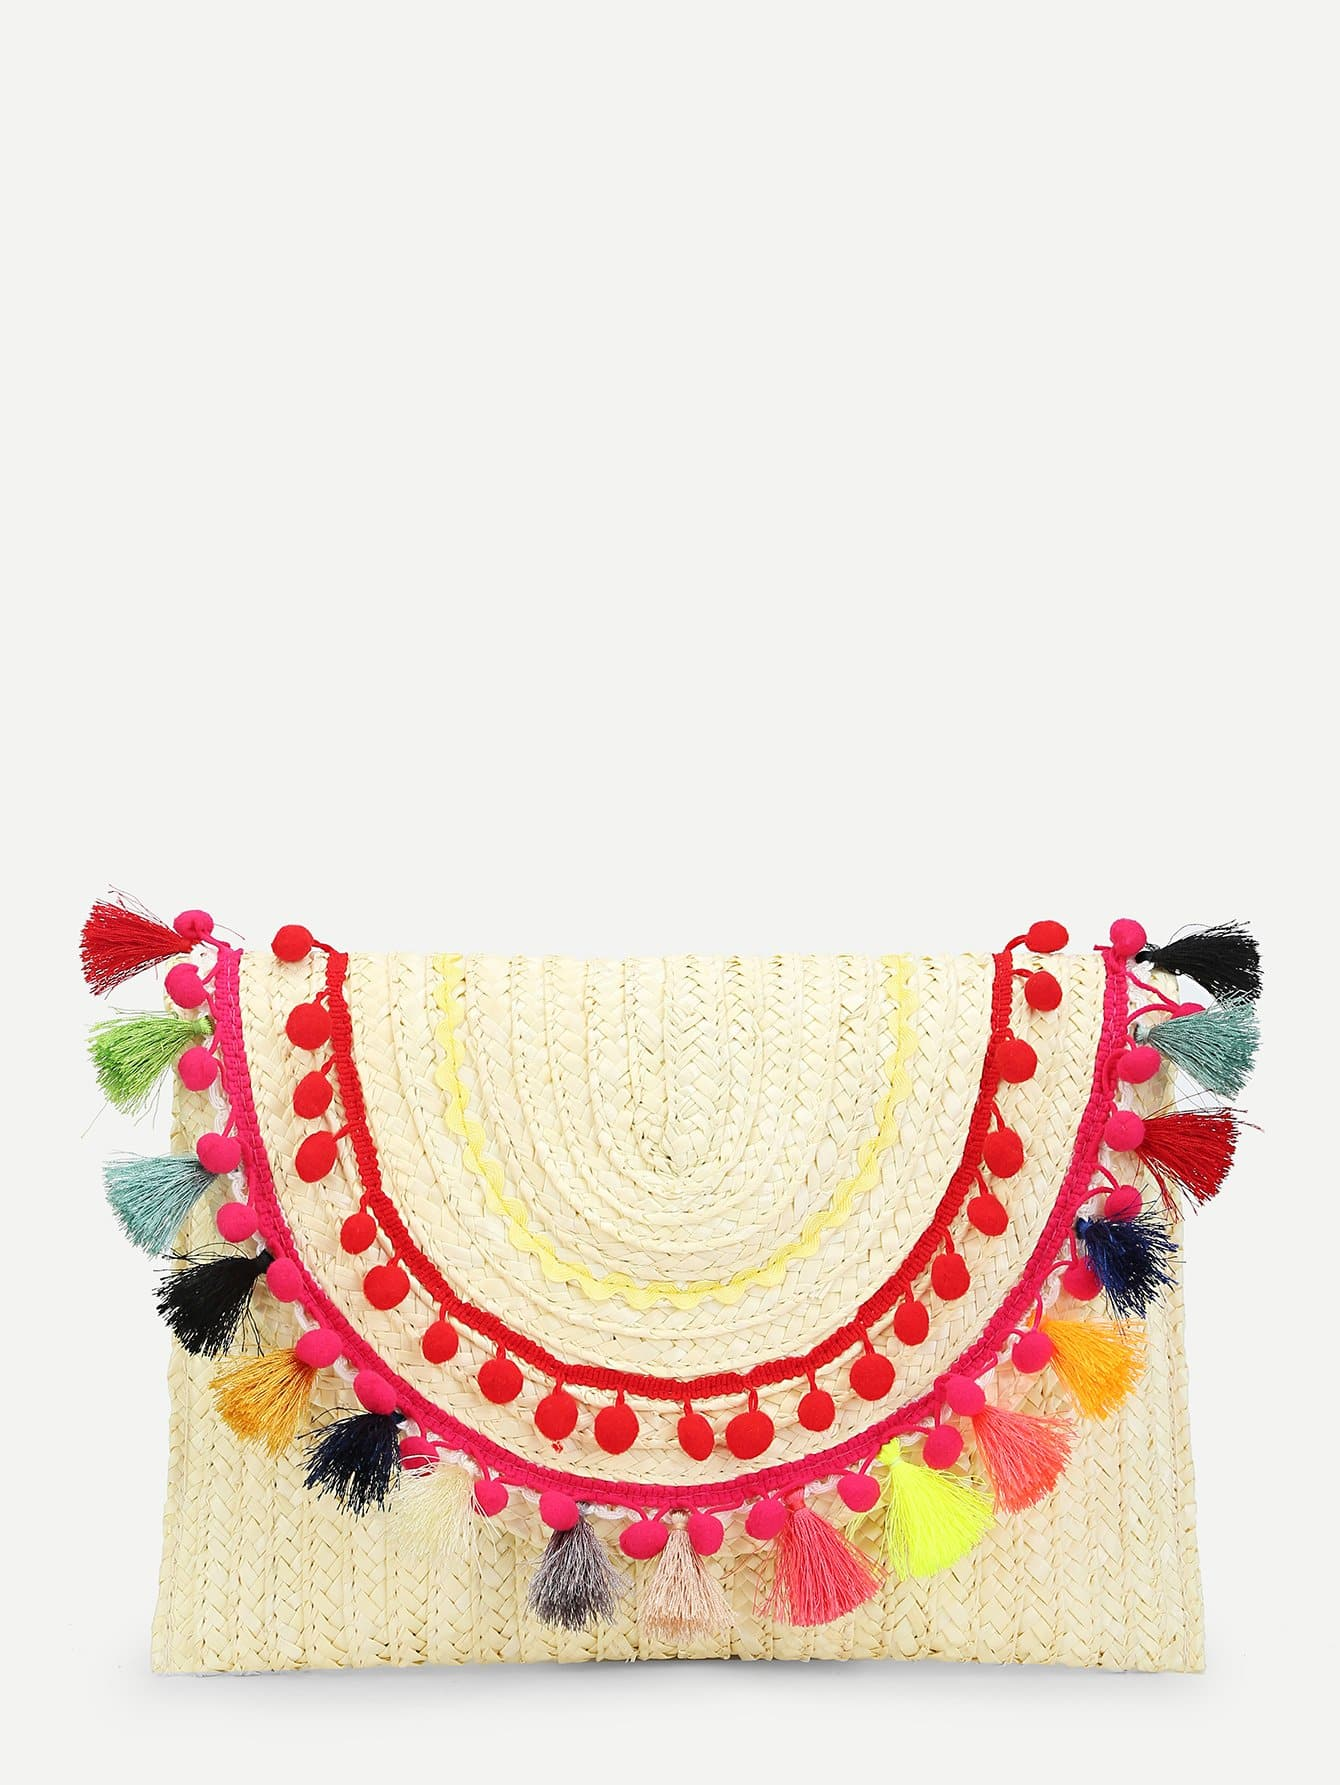 Tassel & Pom Pom Decorated Straw Bag adidas x pharrell little kids superstar supercolor